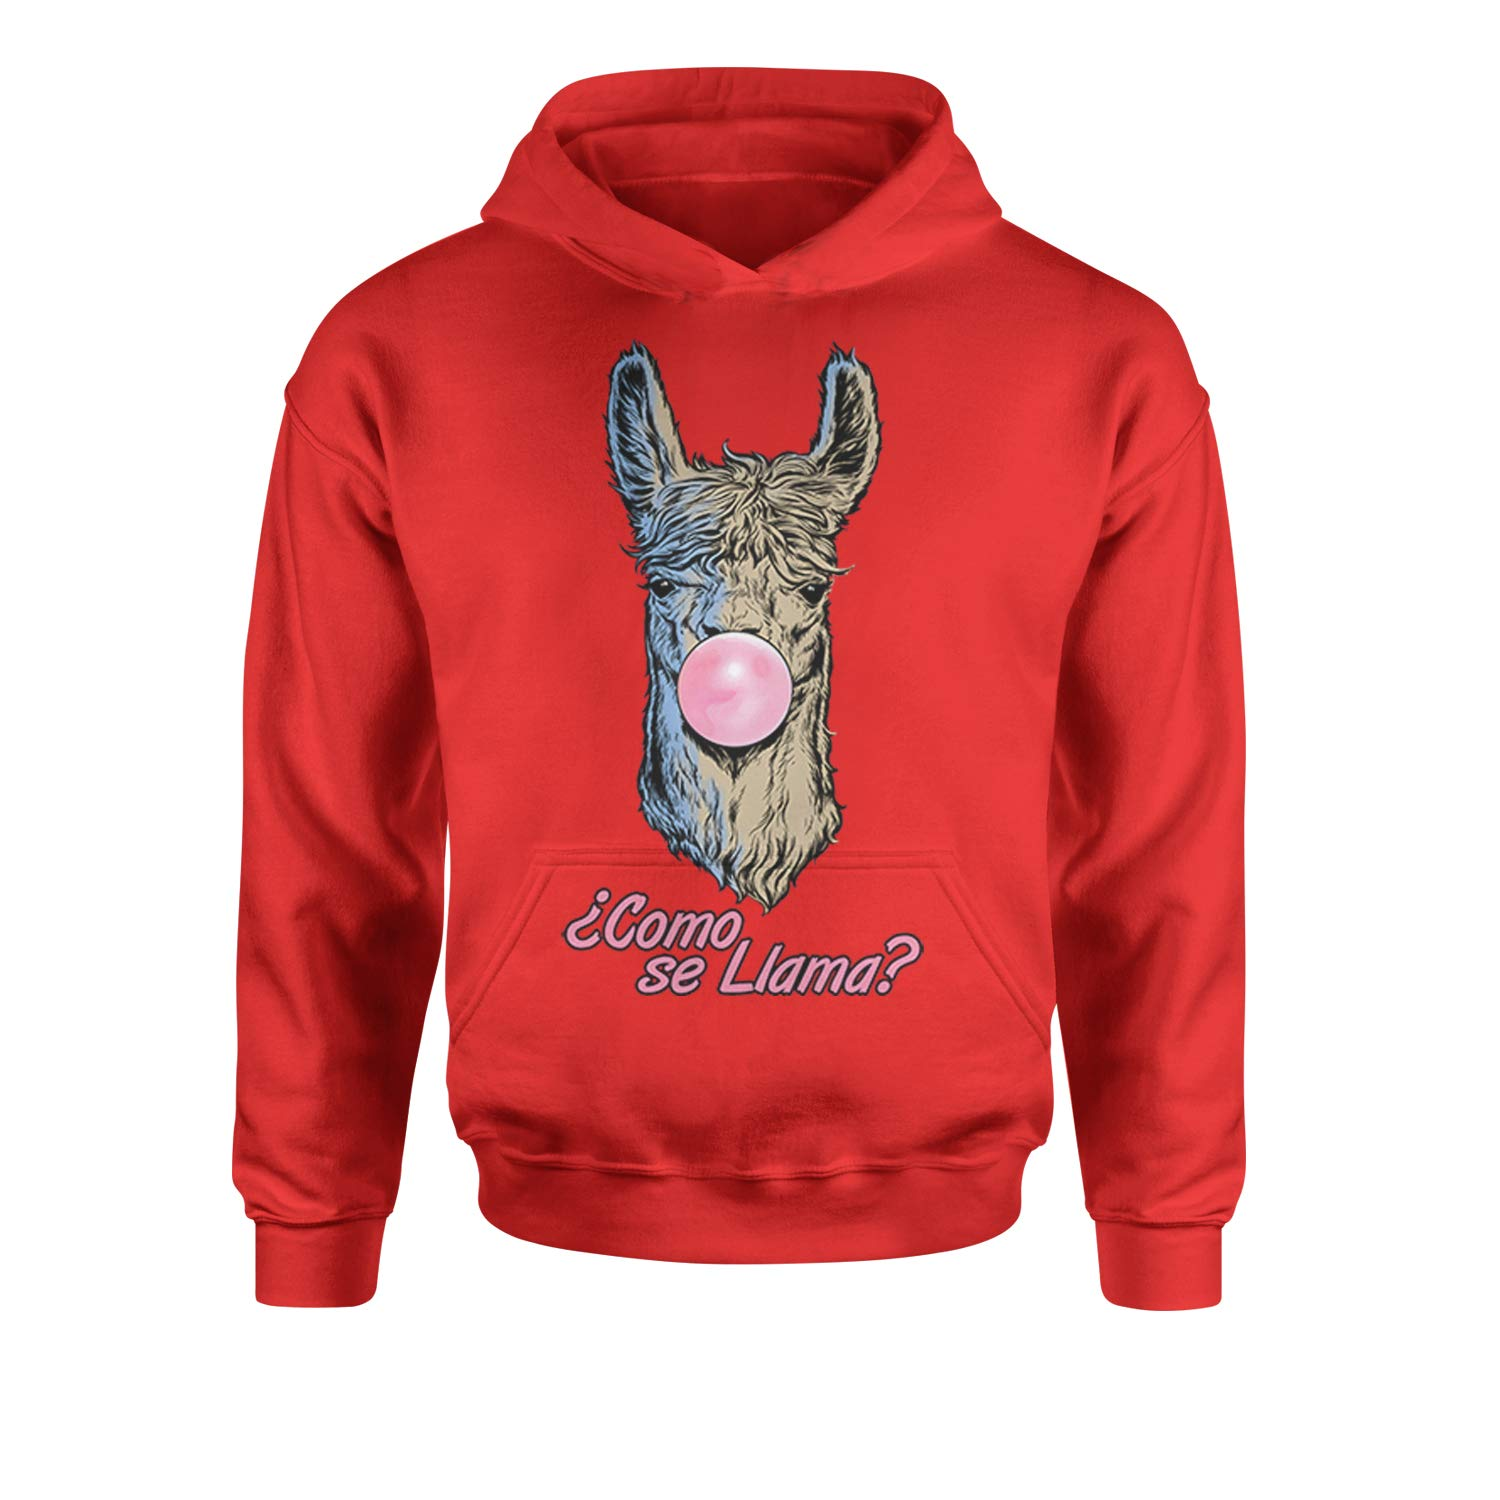 Expression Tees Como Se Llama Bubble Gum Youth-Sized Hoodie